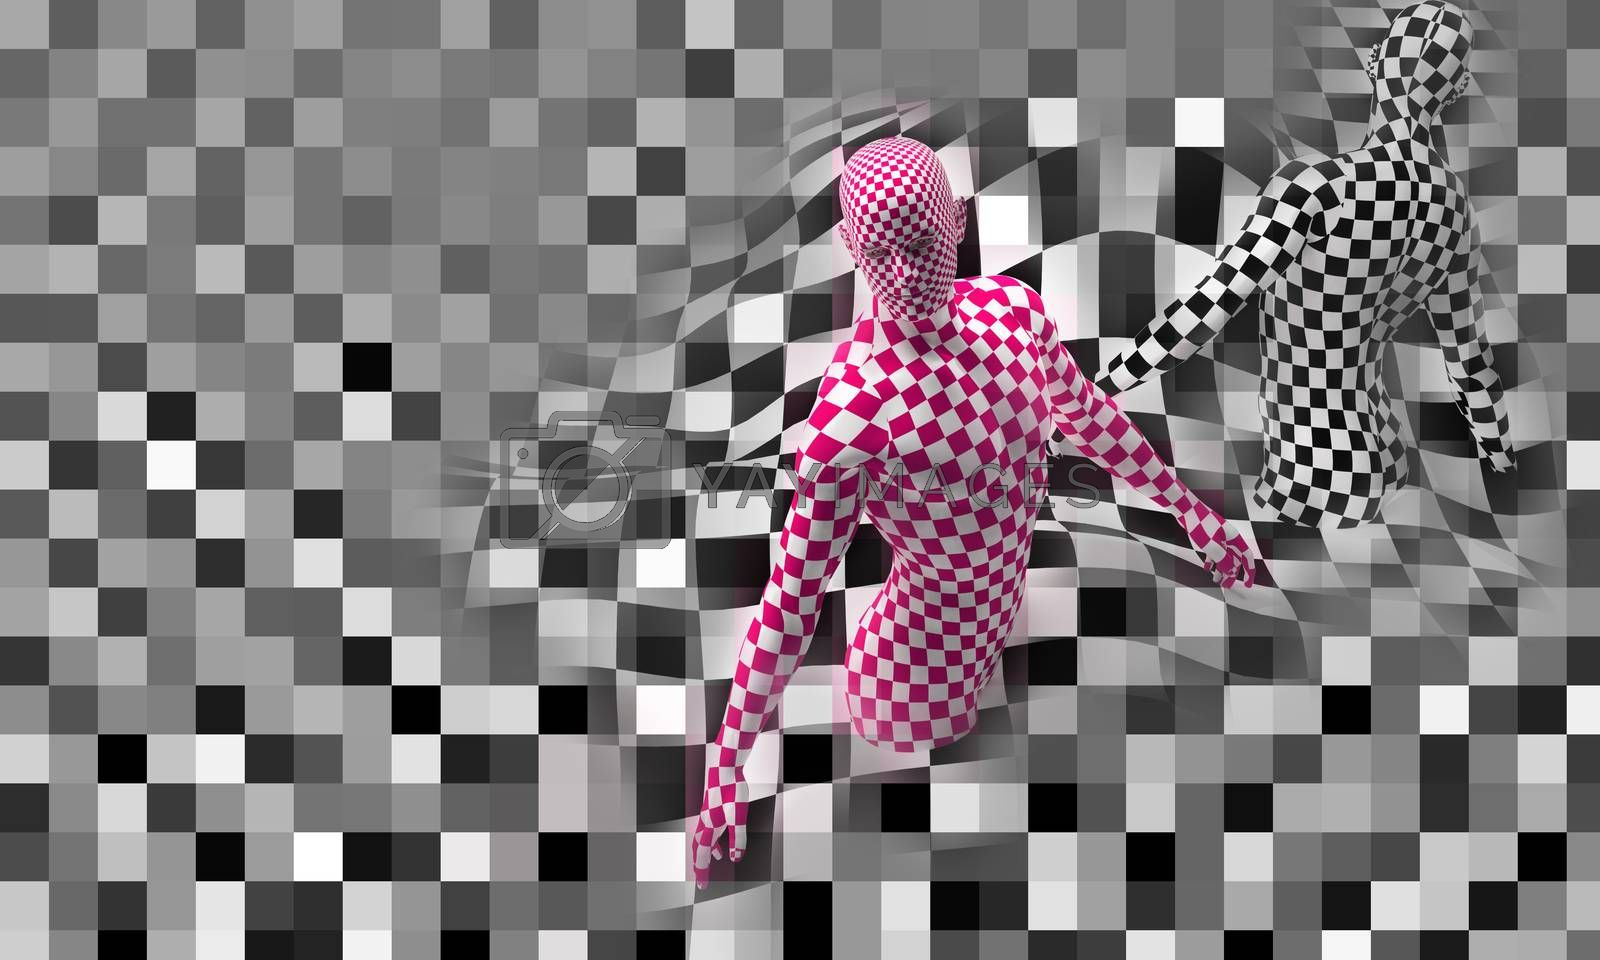 Checkered composition with Black end Red checkered people made in 3d